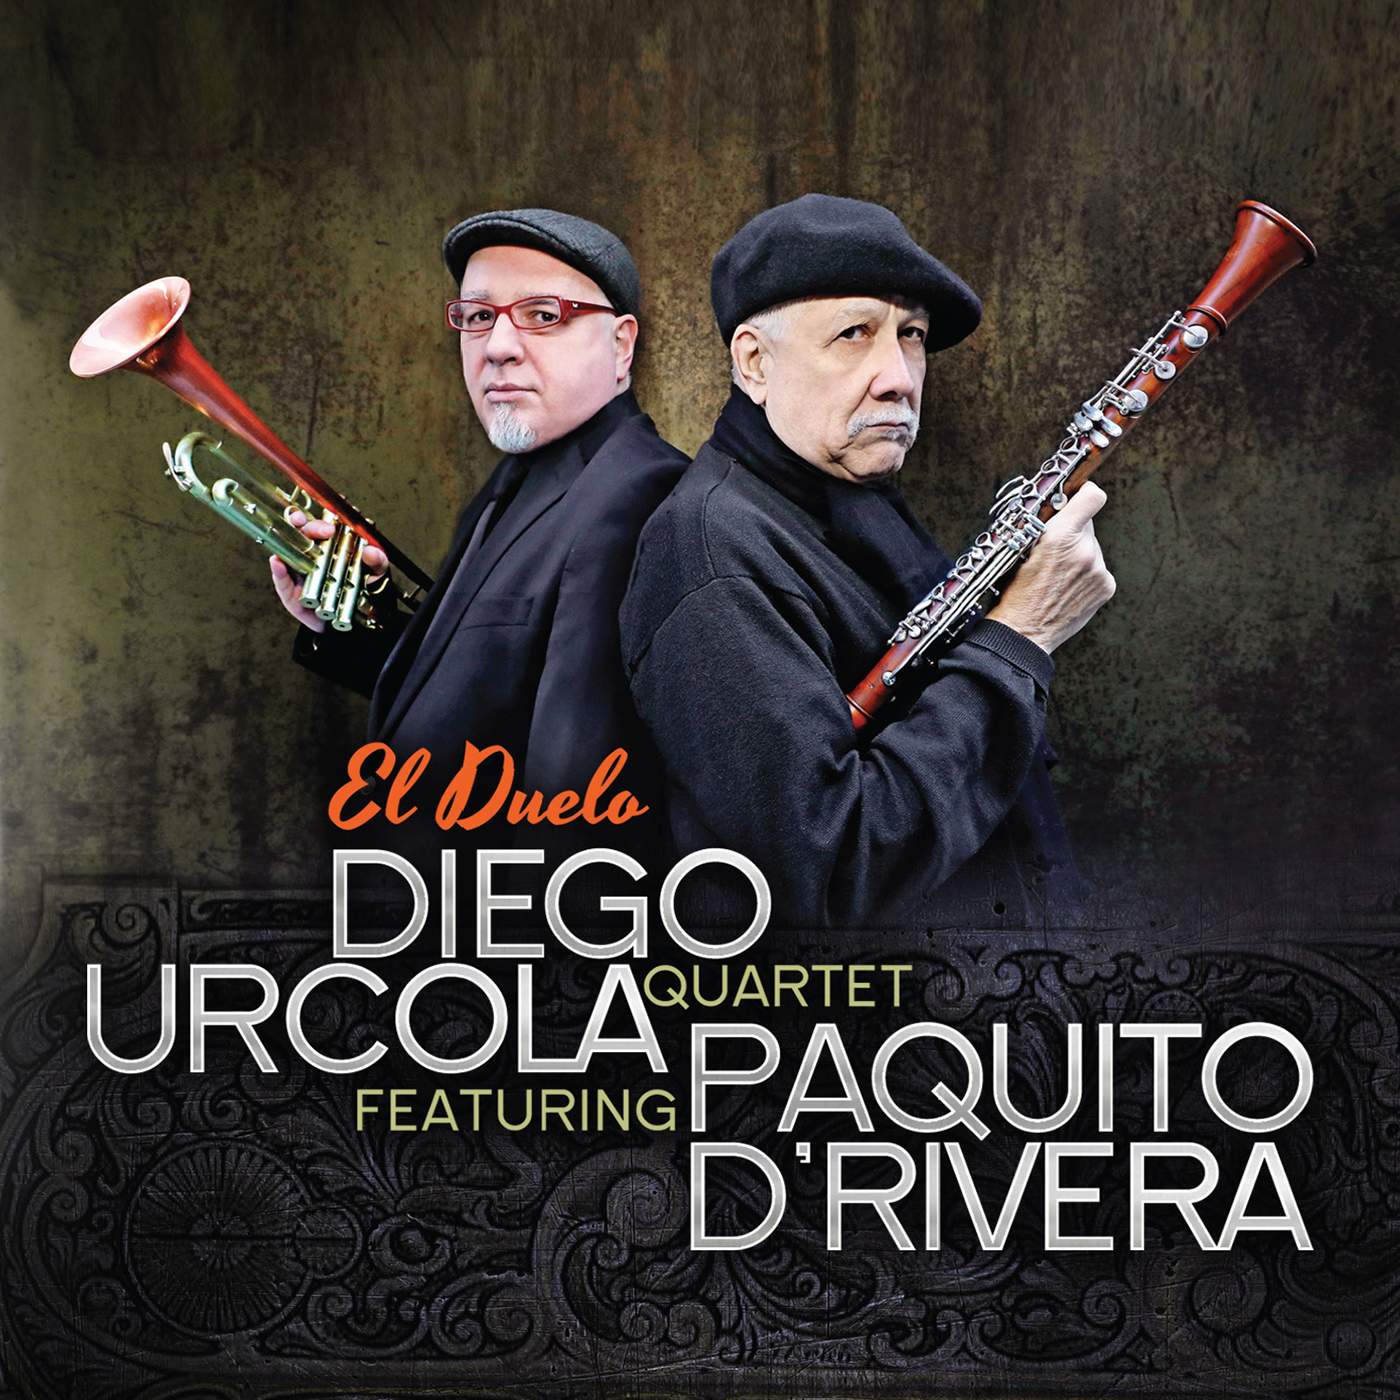 El Duelo  by Diego  Urcola cover